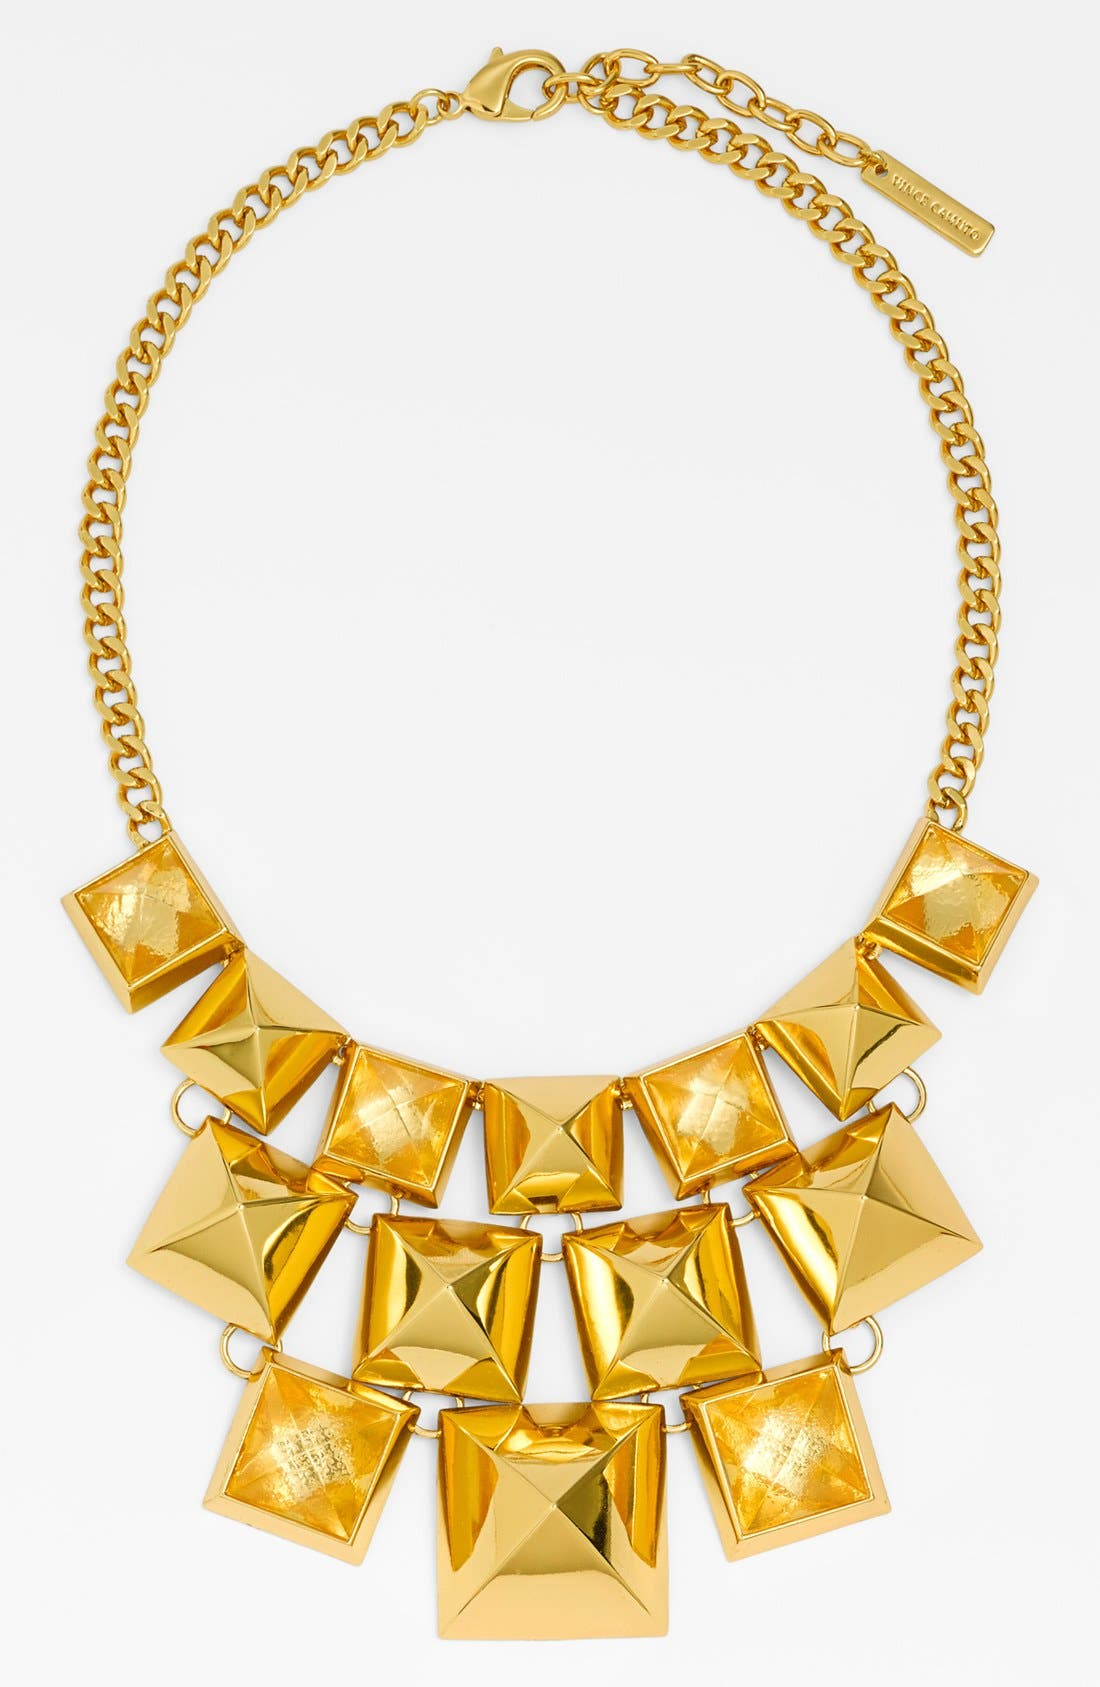 Main Image - Vince Camuto 'Clearview' Pyramid Statement Necklace